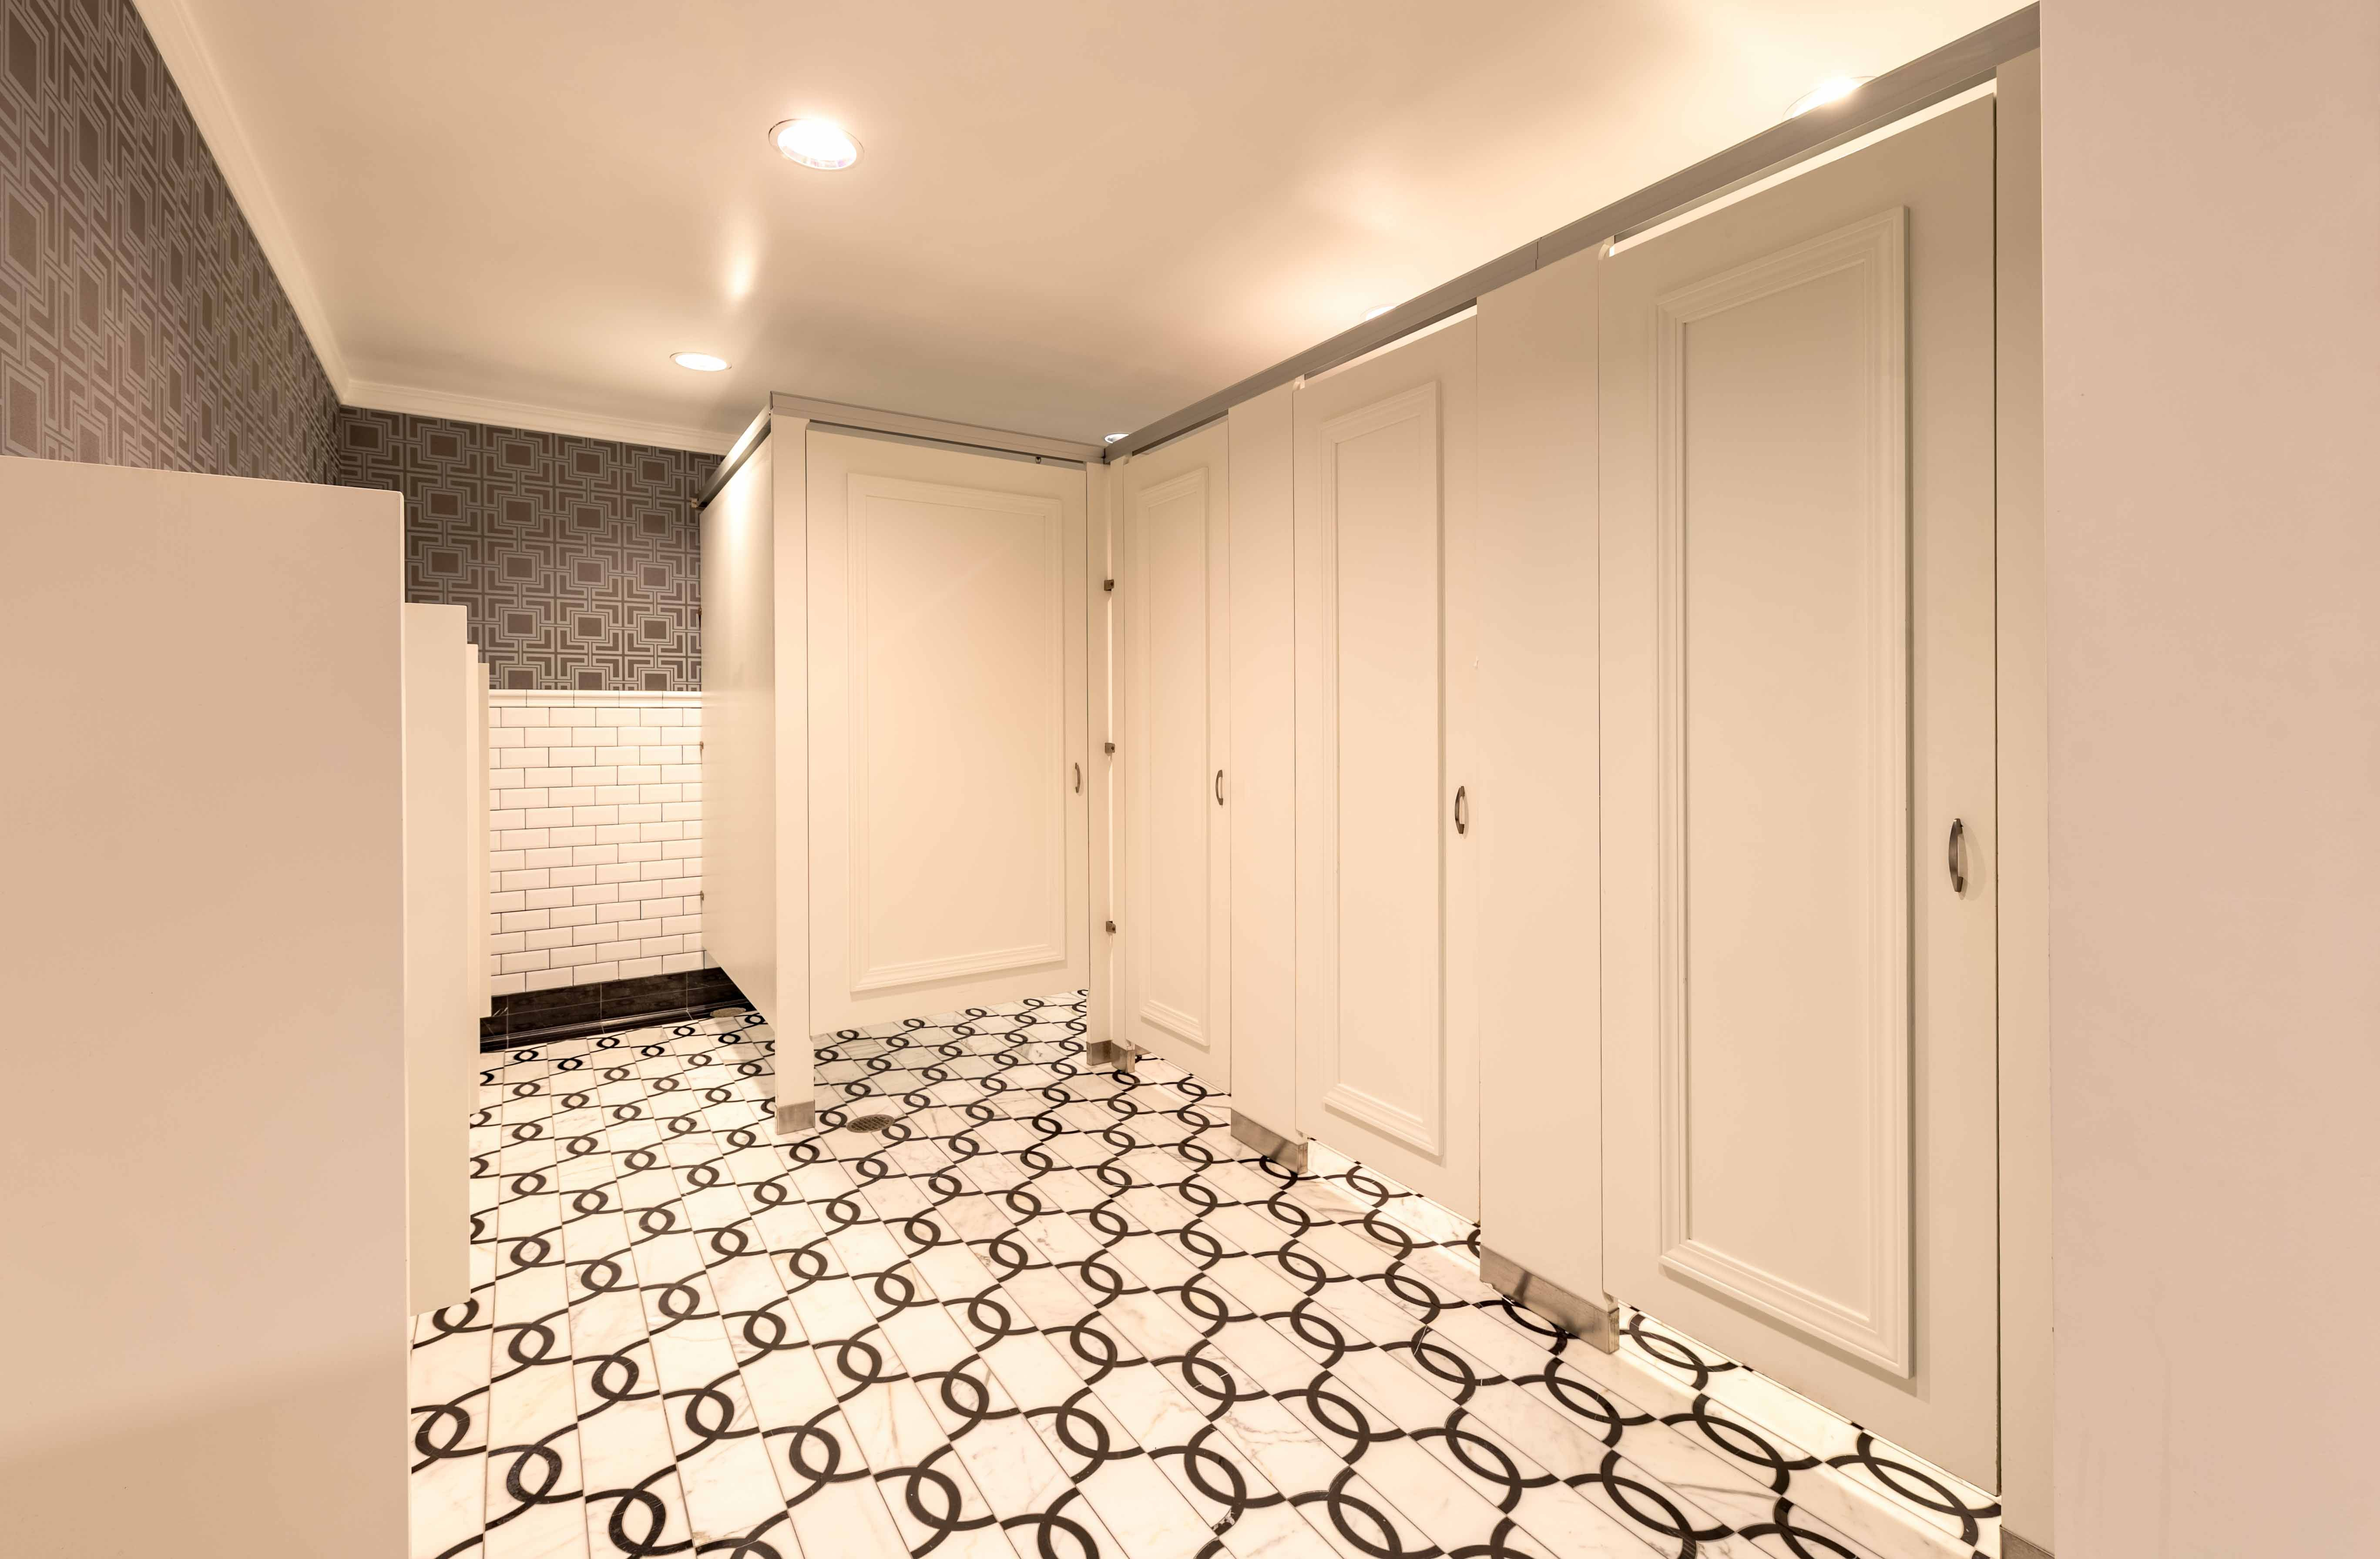 Ironwood Manufacturing Wood Veneer Toilet Partition And Bathroom Doors With Molding Beautiful Upscale Public Restroom Stalls Restroom Design